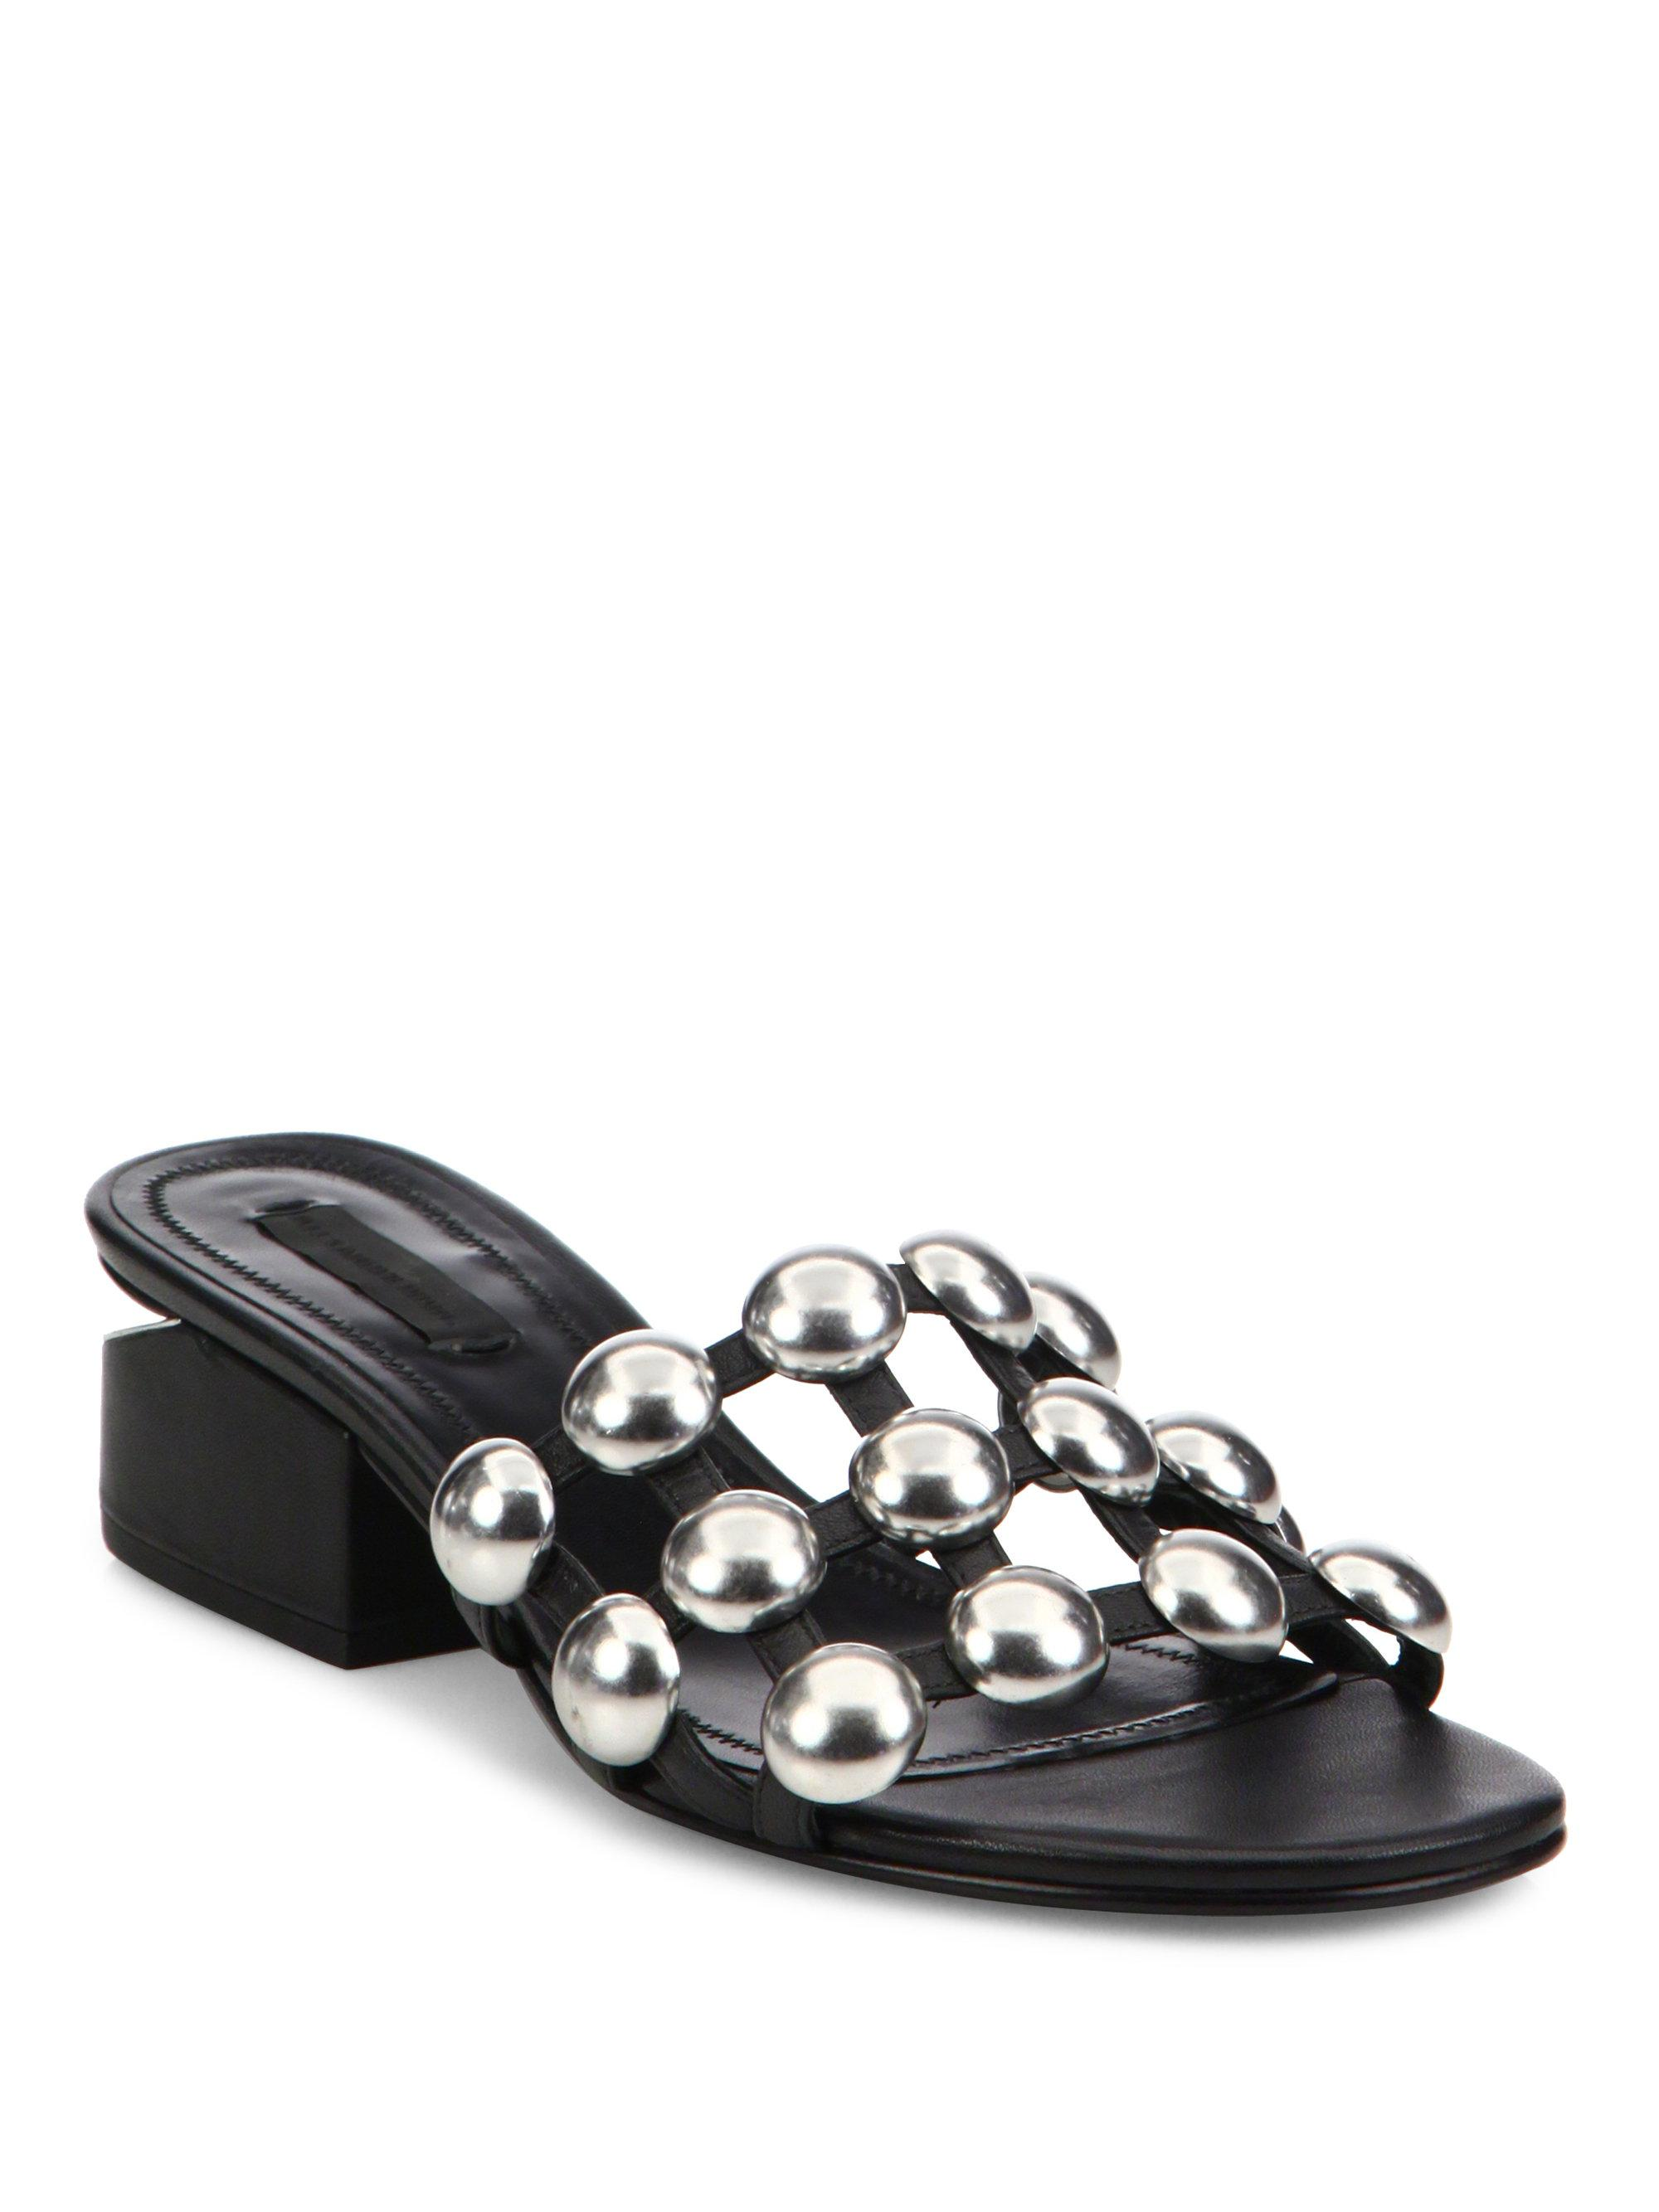 buy cheap pre order Alexander Wang Embossed Slide Sandals cheap geniue stockist countdown package free shipping under $60 YhH3t4R